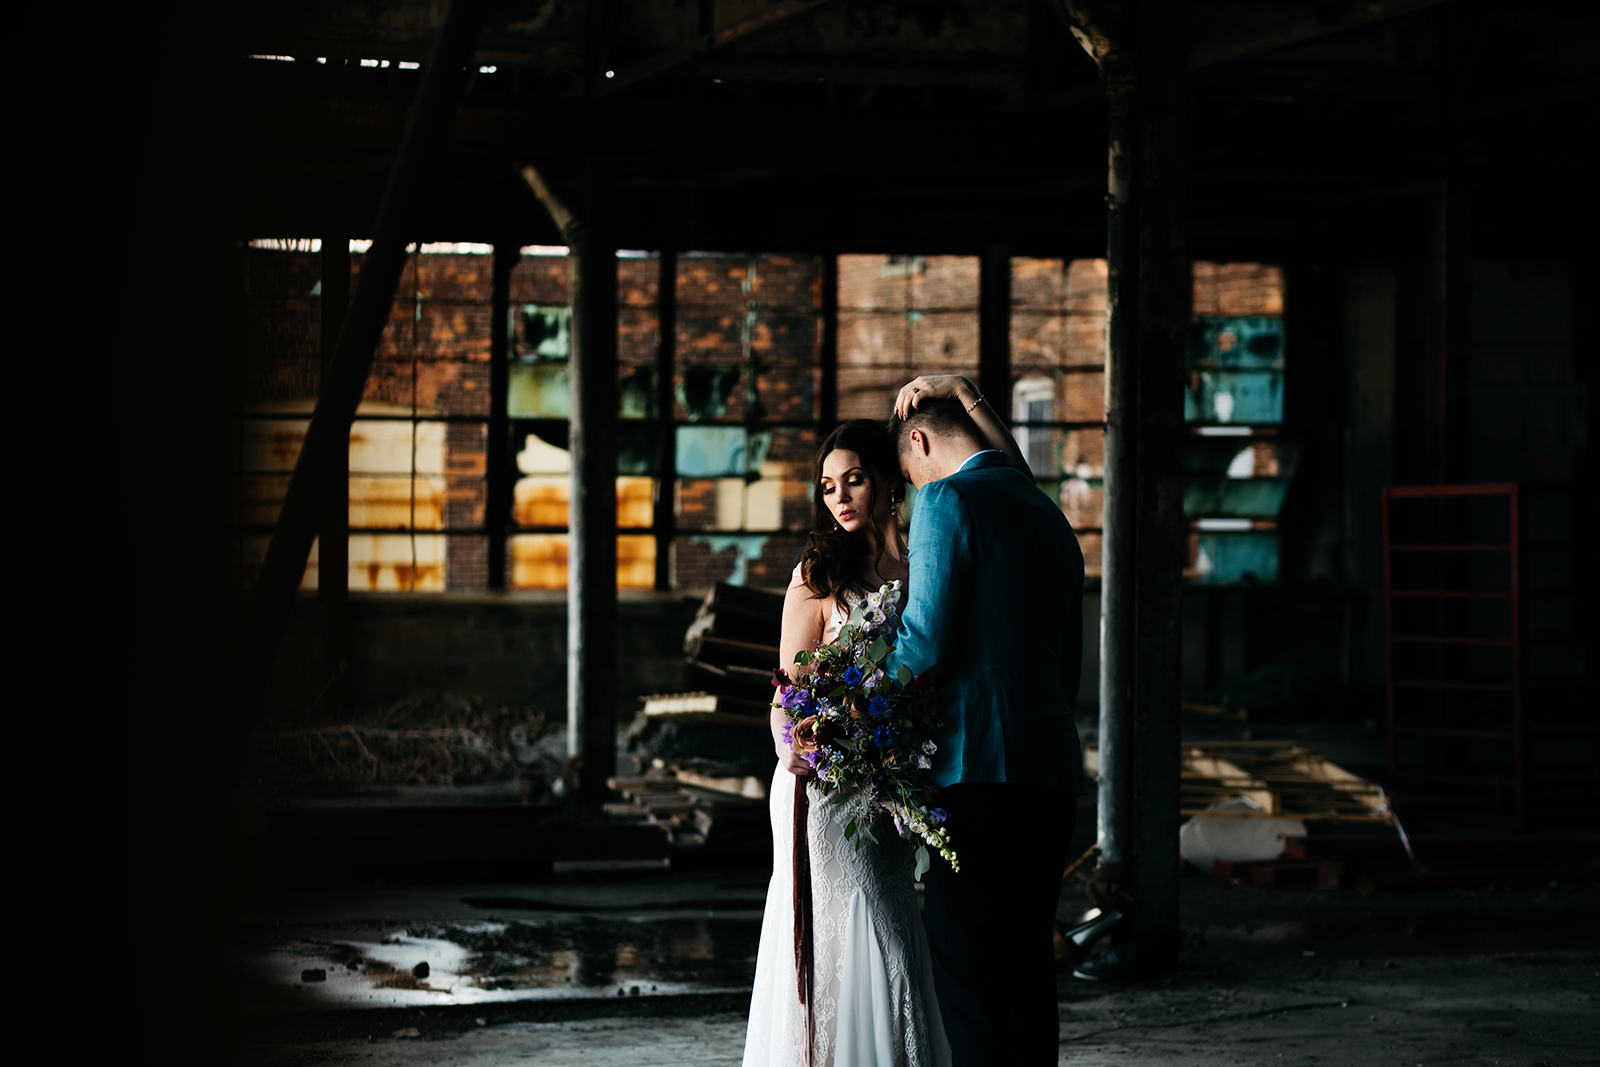 creative wedding photography done in Great Lakes Event Center